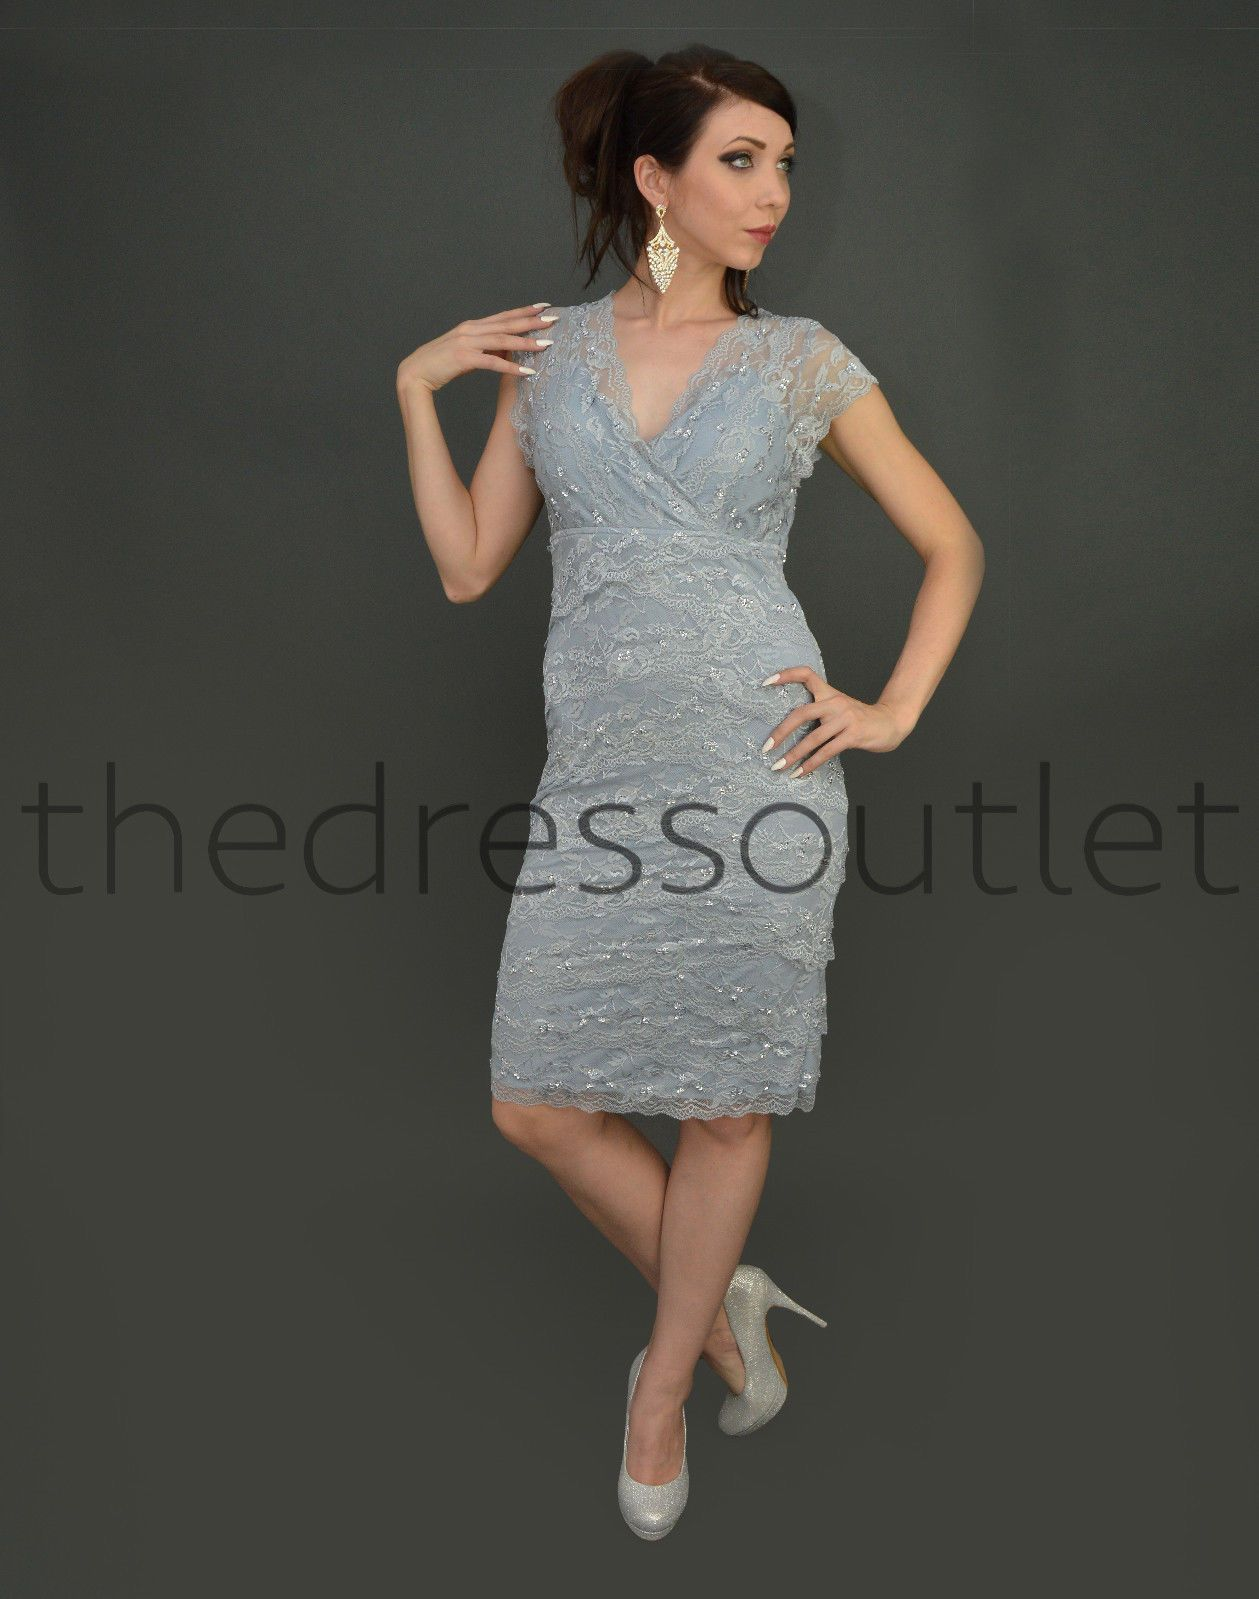 Short Formal Lace Cocktai Dress 2018 | Vintage lace, Outlets and Shorts